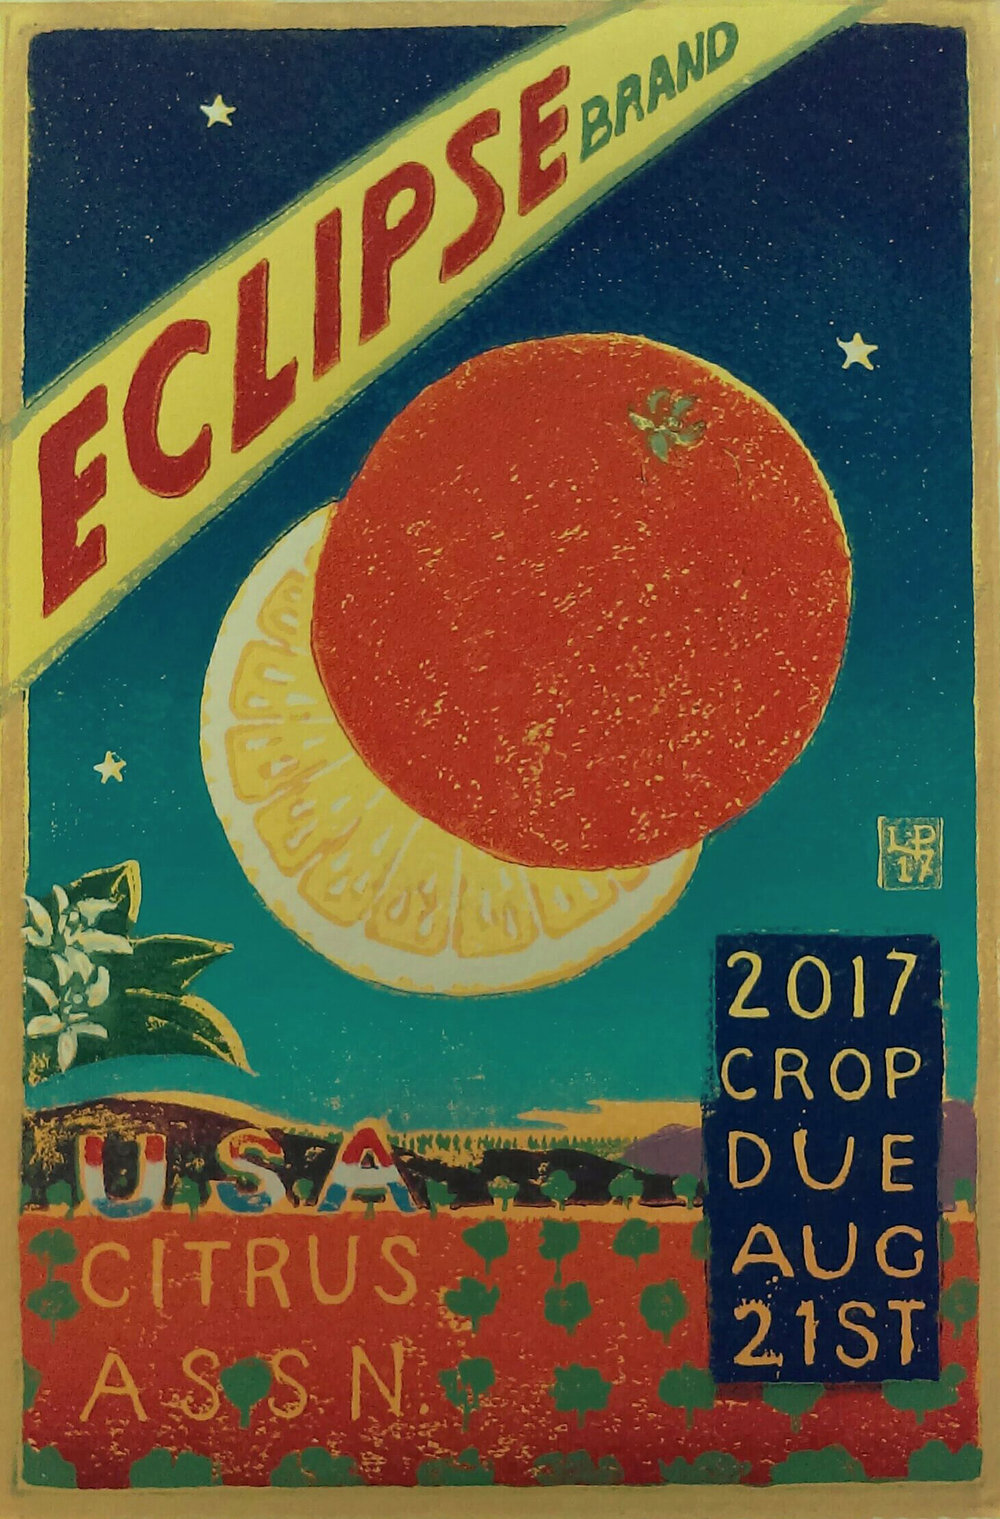 Eclipse Brand Citrus